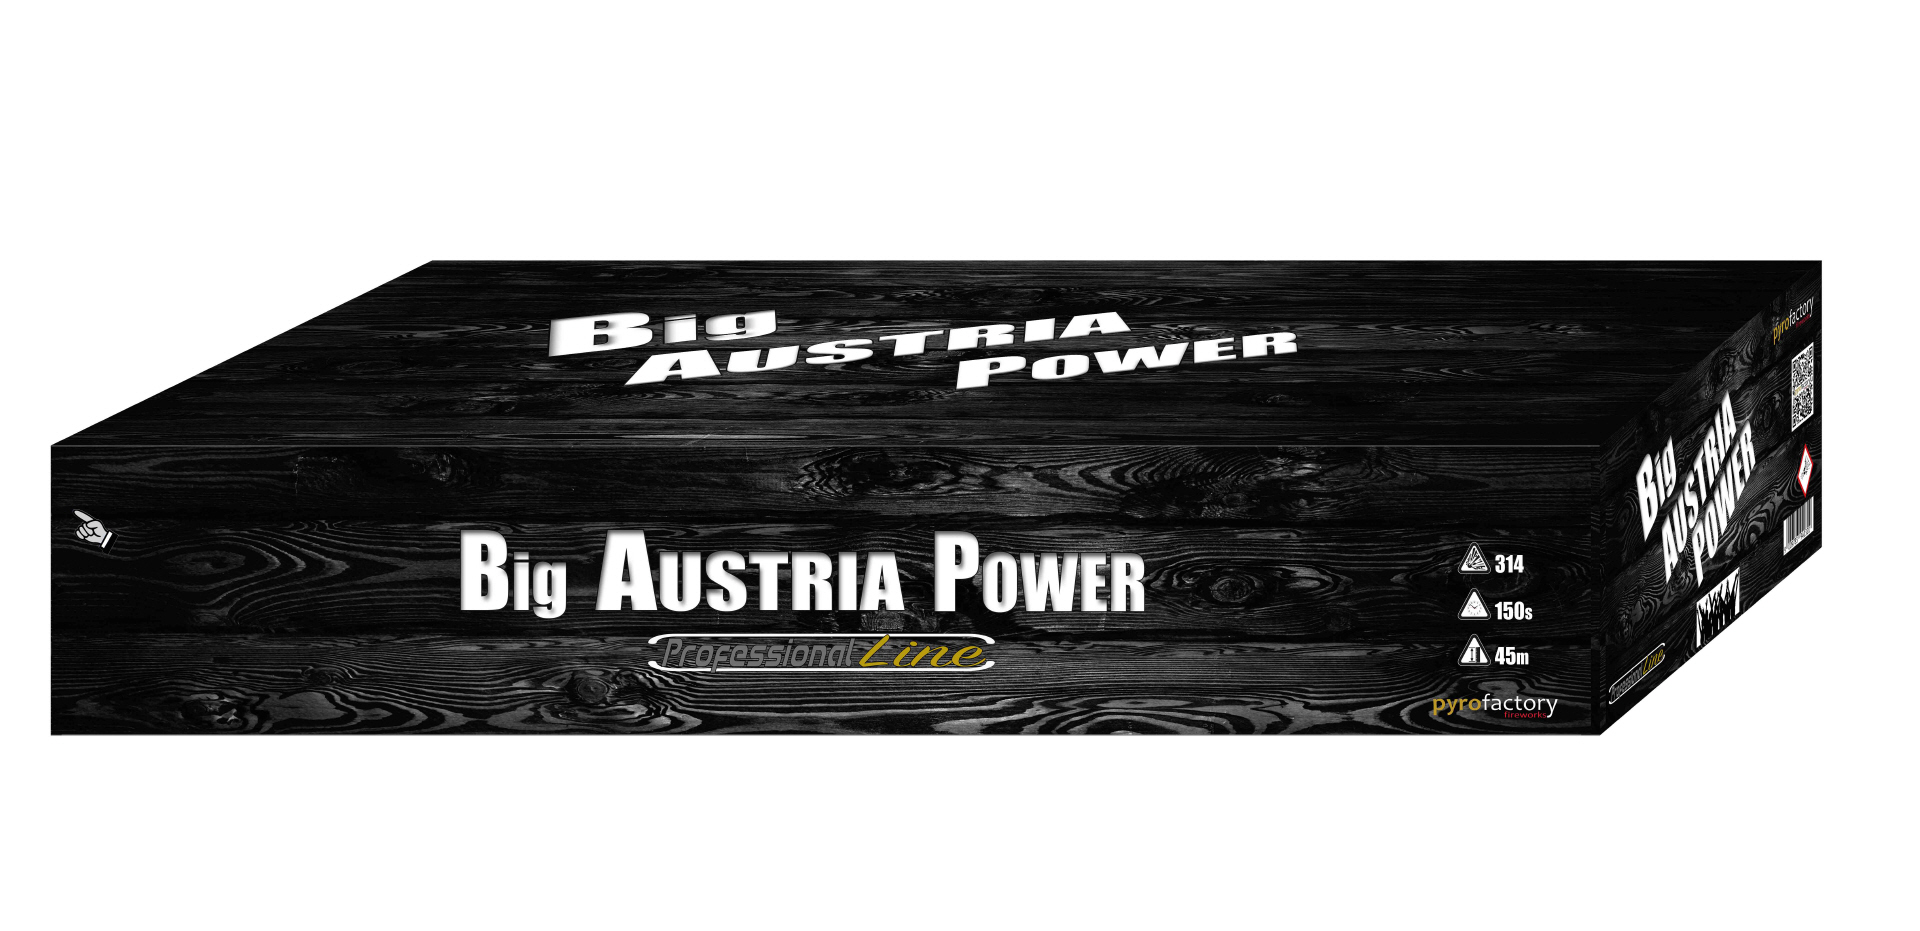 Big Austria Power-314 Schuss